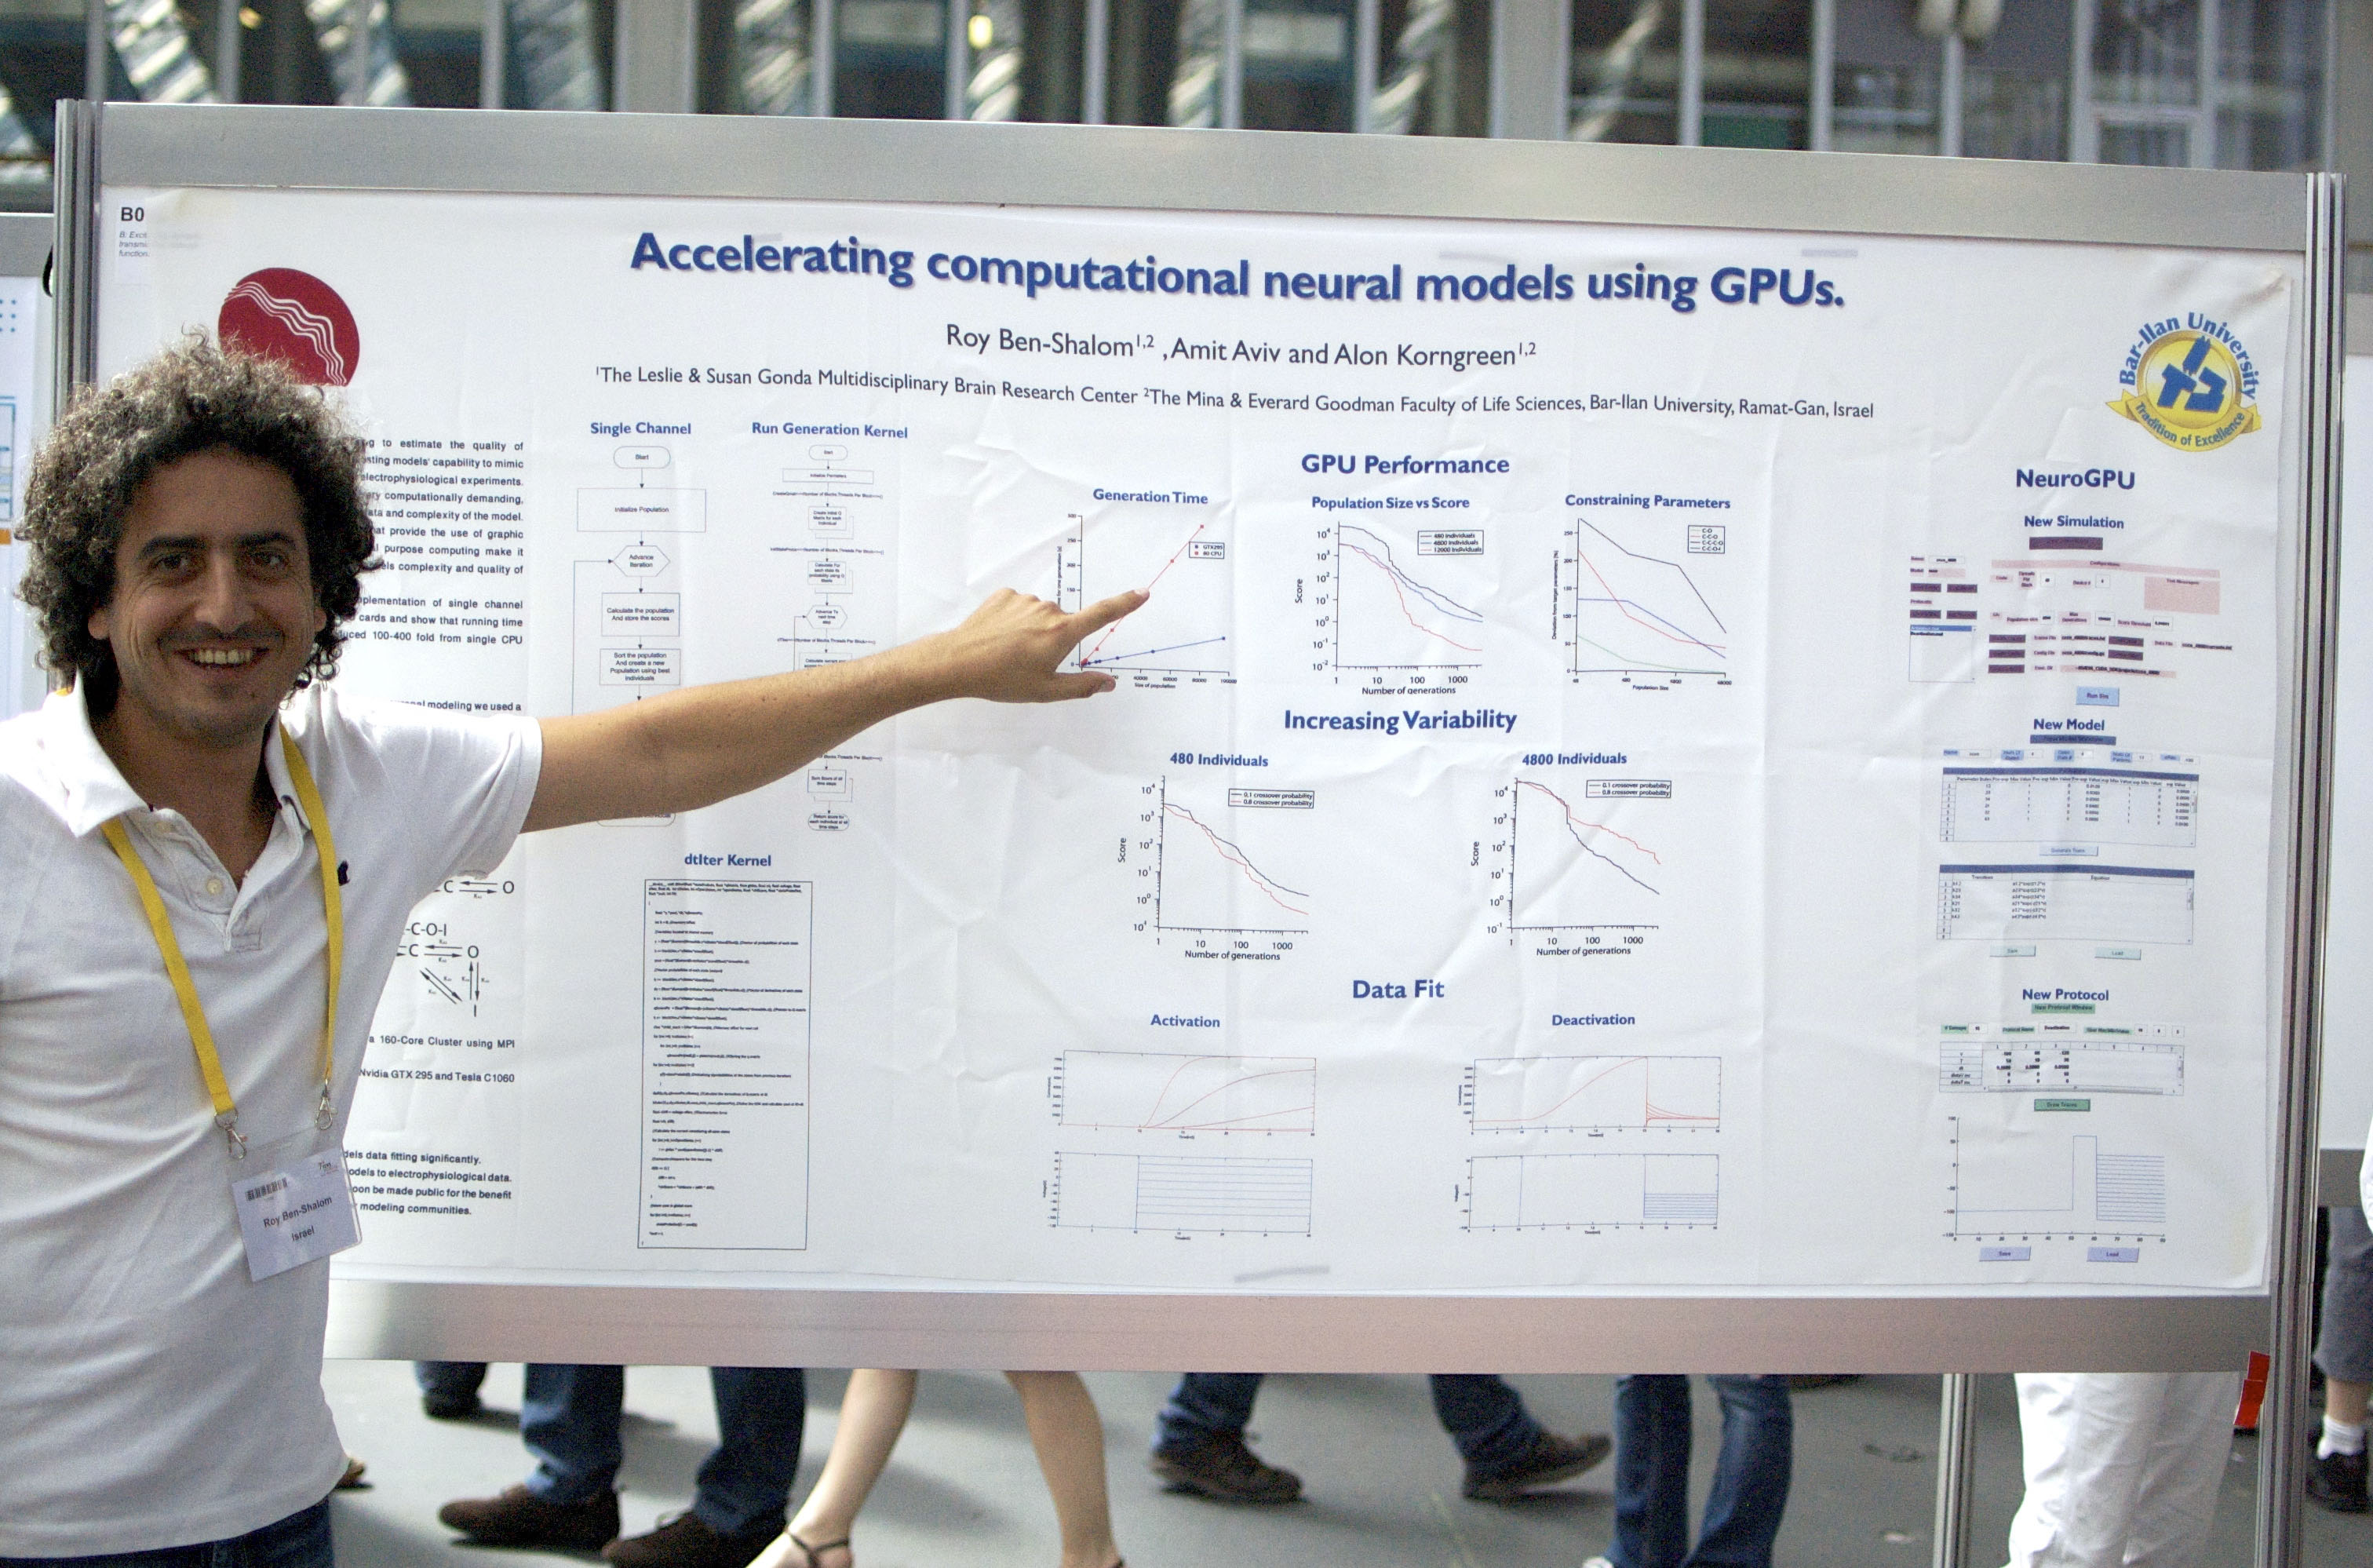 Roy presenting a poster, FENS 2010